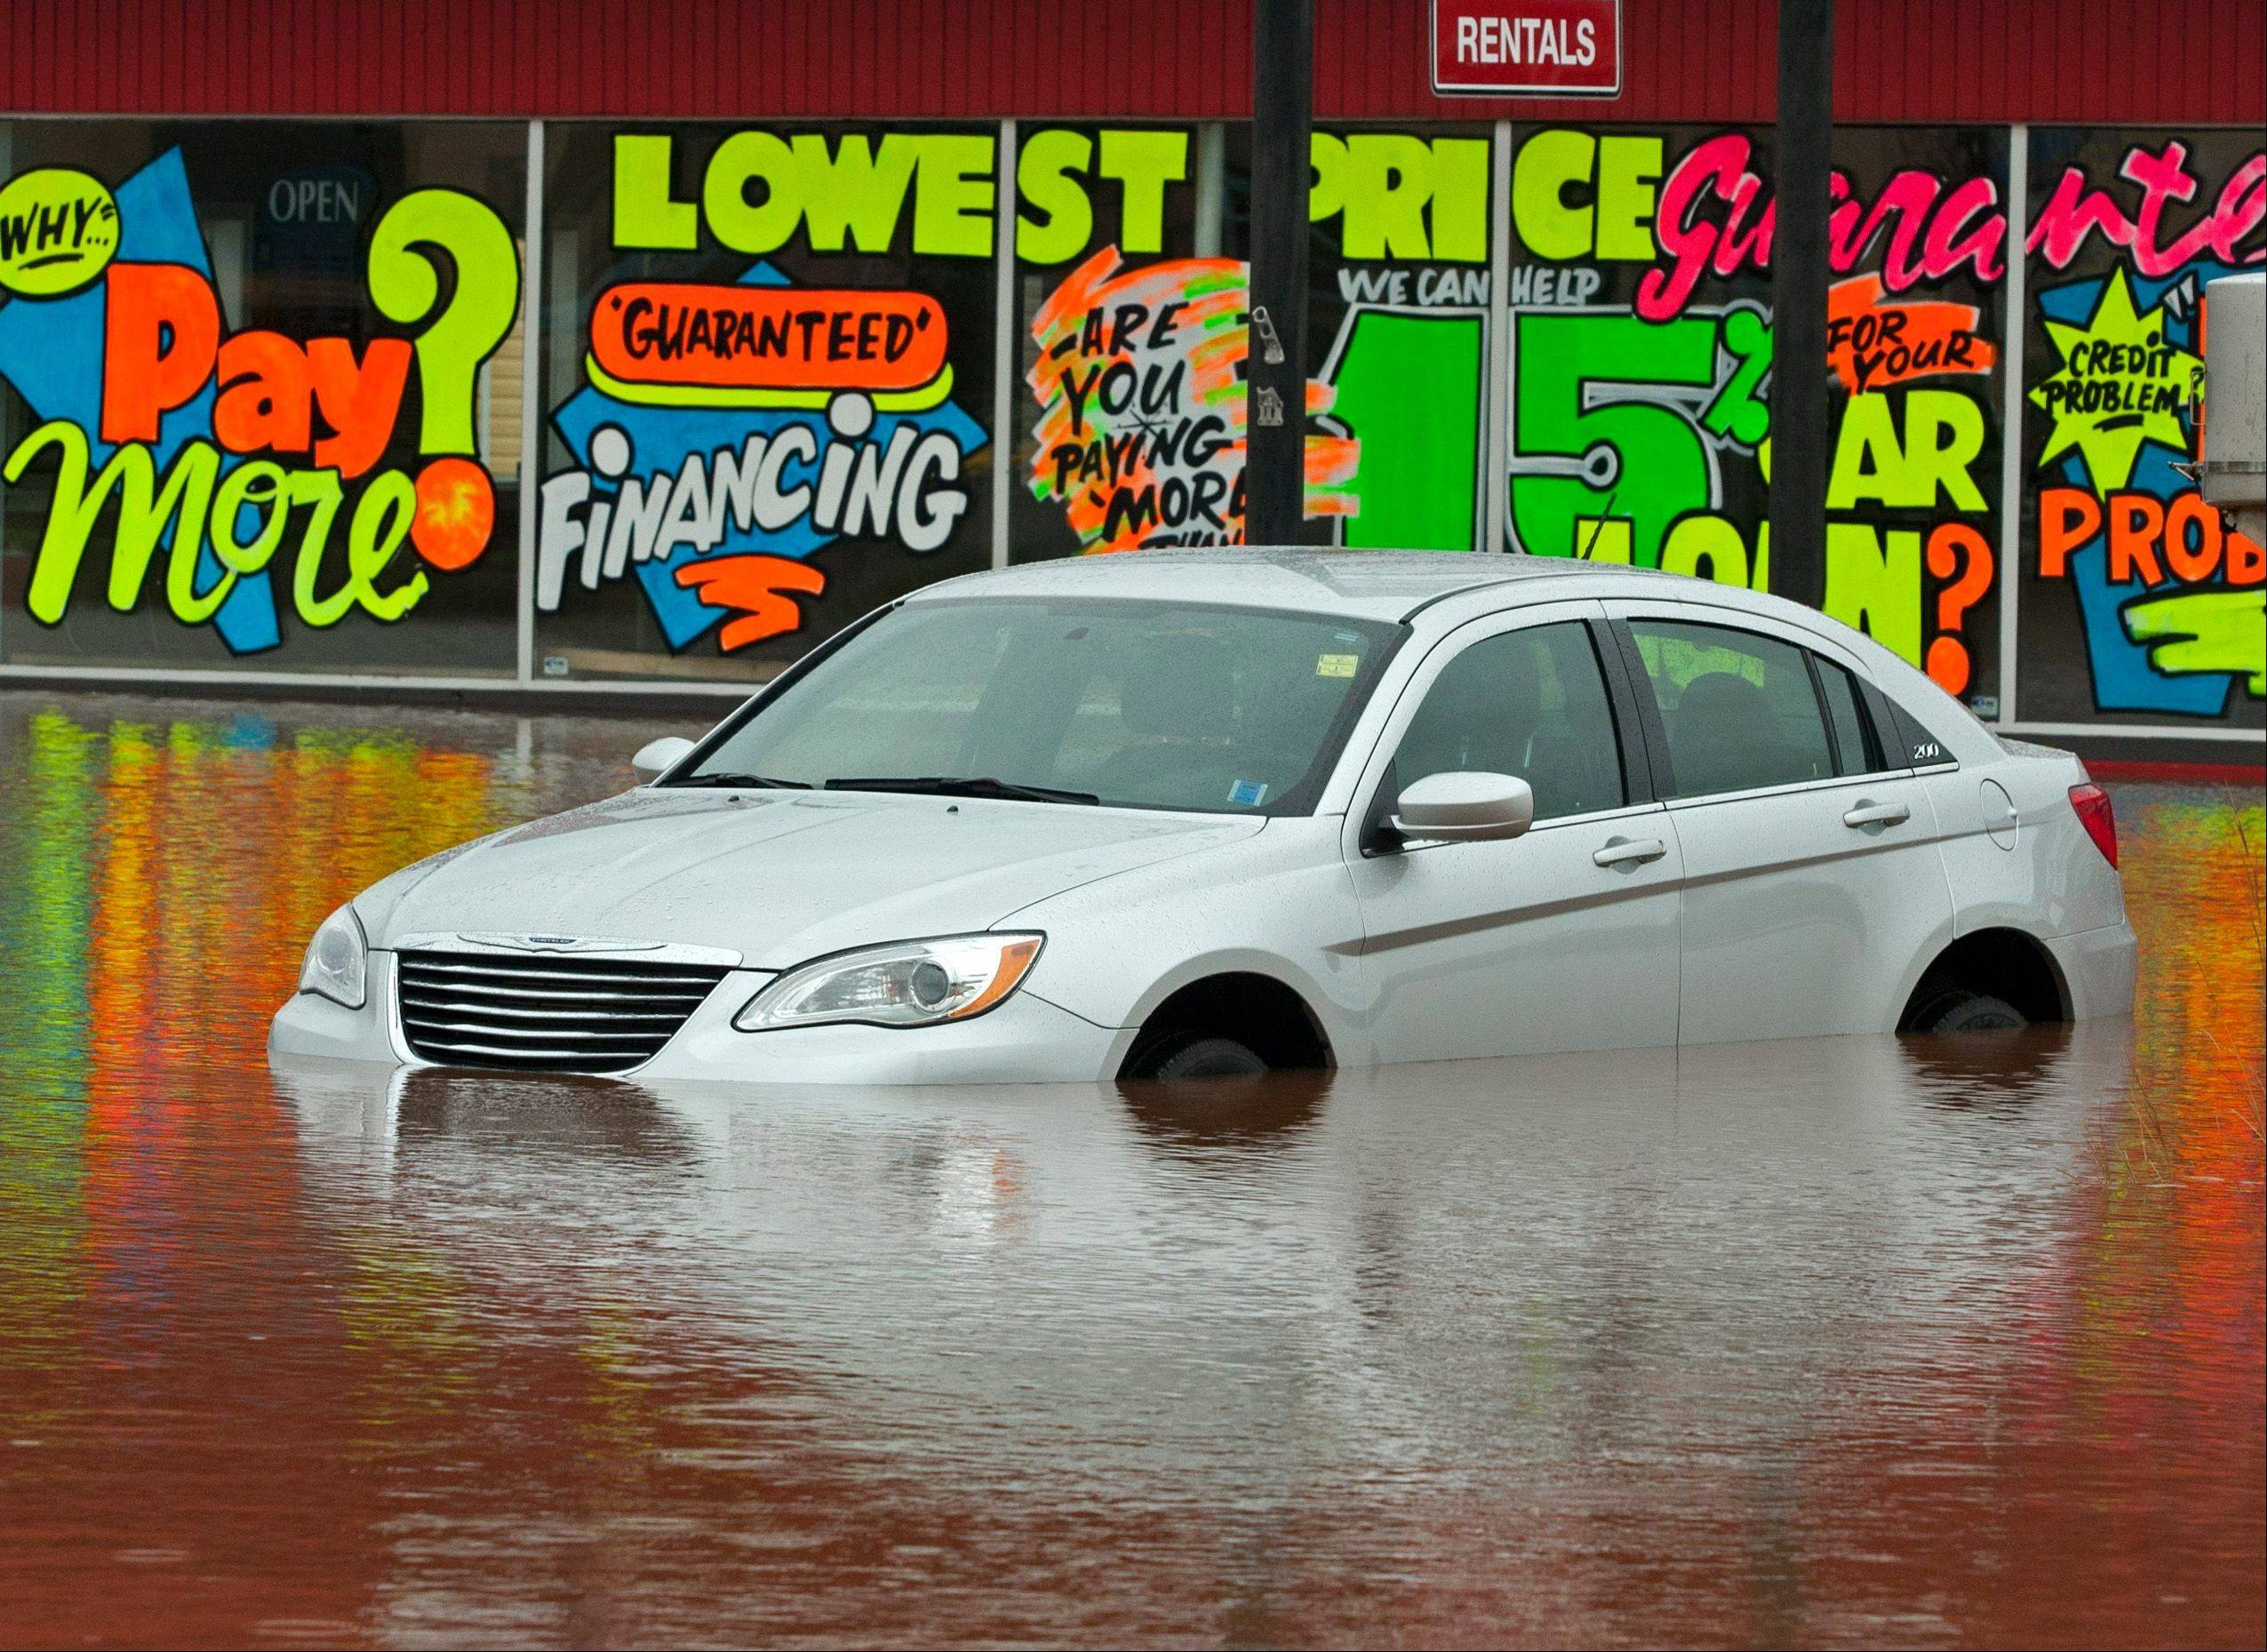 A vehicle sits outside a flooded car dealership lot after dikes on the Salmon River gave way in Truro, Nova Scotia on Monday, Sept. 10, 2012. The area is under a rainfall warning as Tropical Storm Leslie churns toward Atlantic Canada.